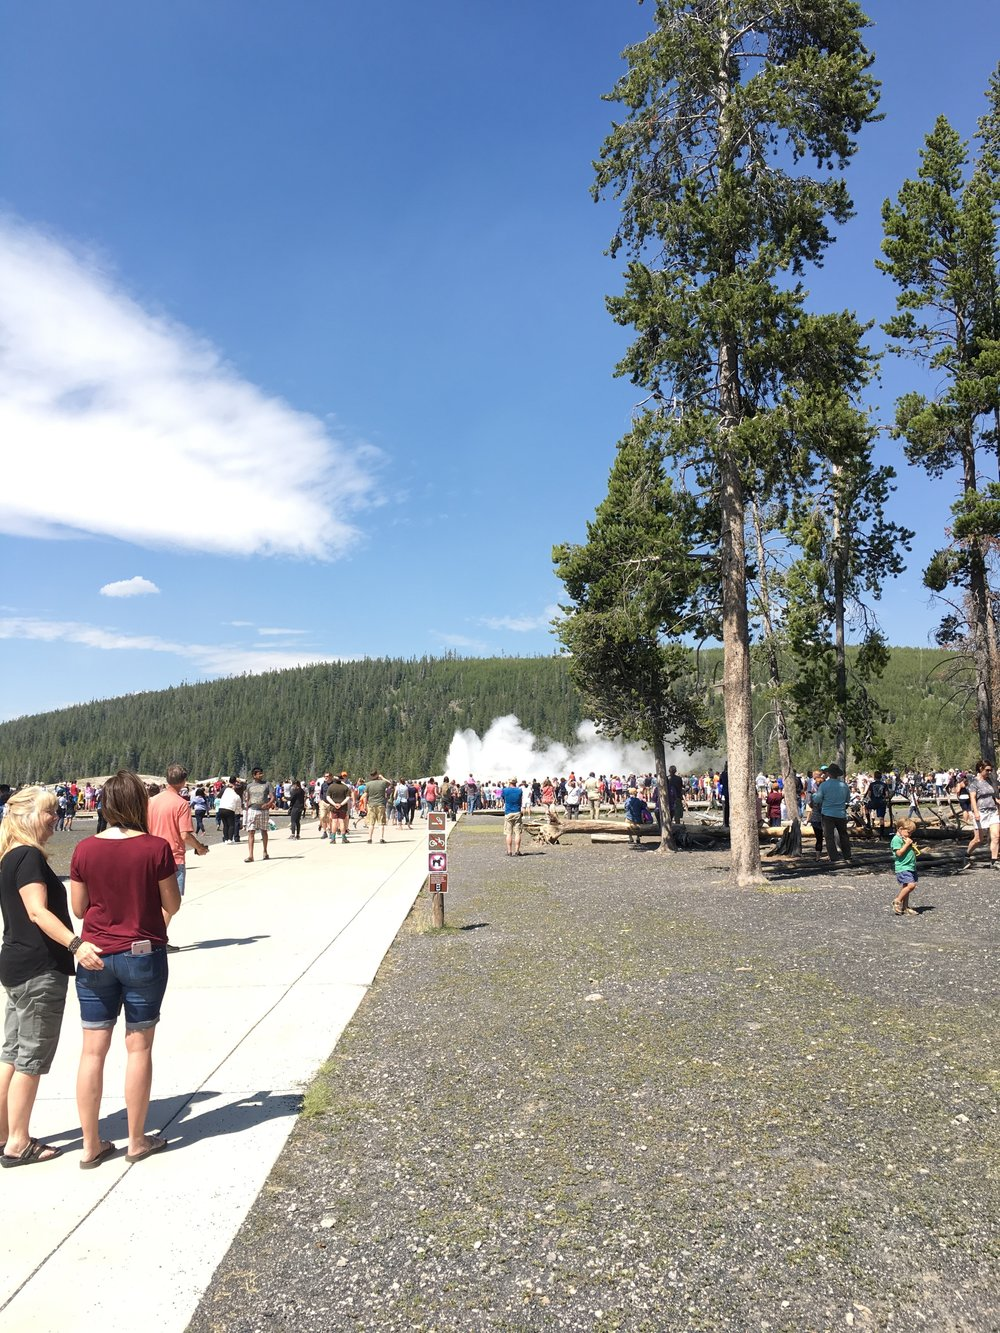 My crummy photo of Old Faithful (so crowded)!